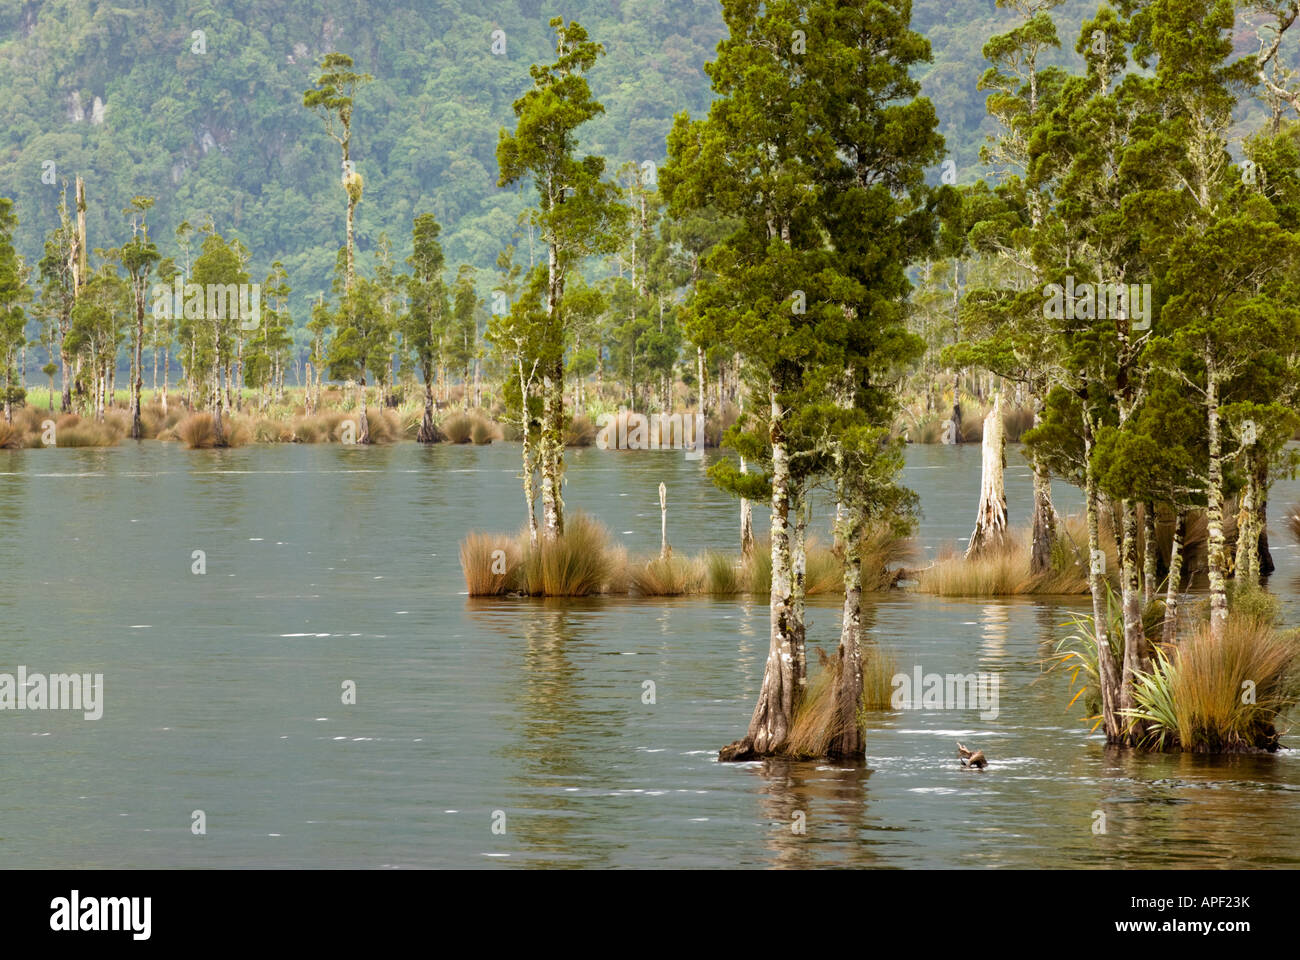 Partially submerged trees in the wetland margins of Lake Brunner - Stock Image